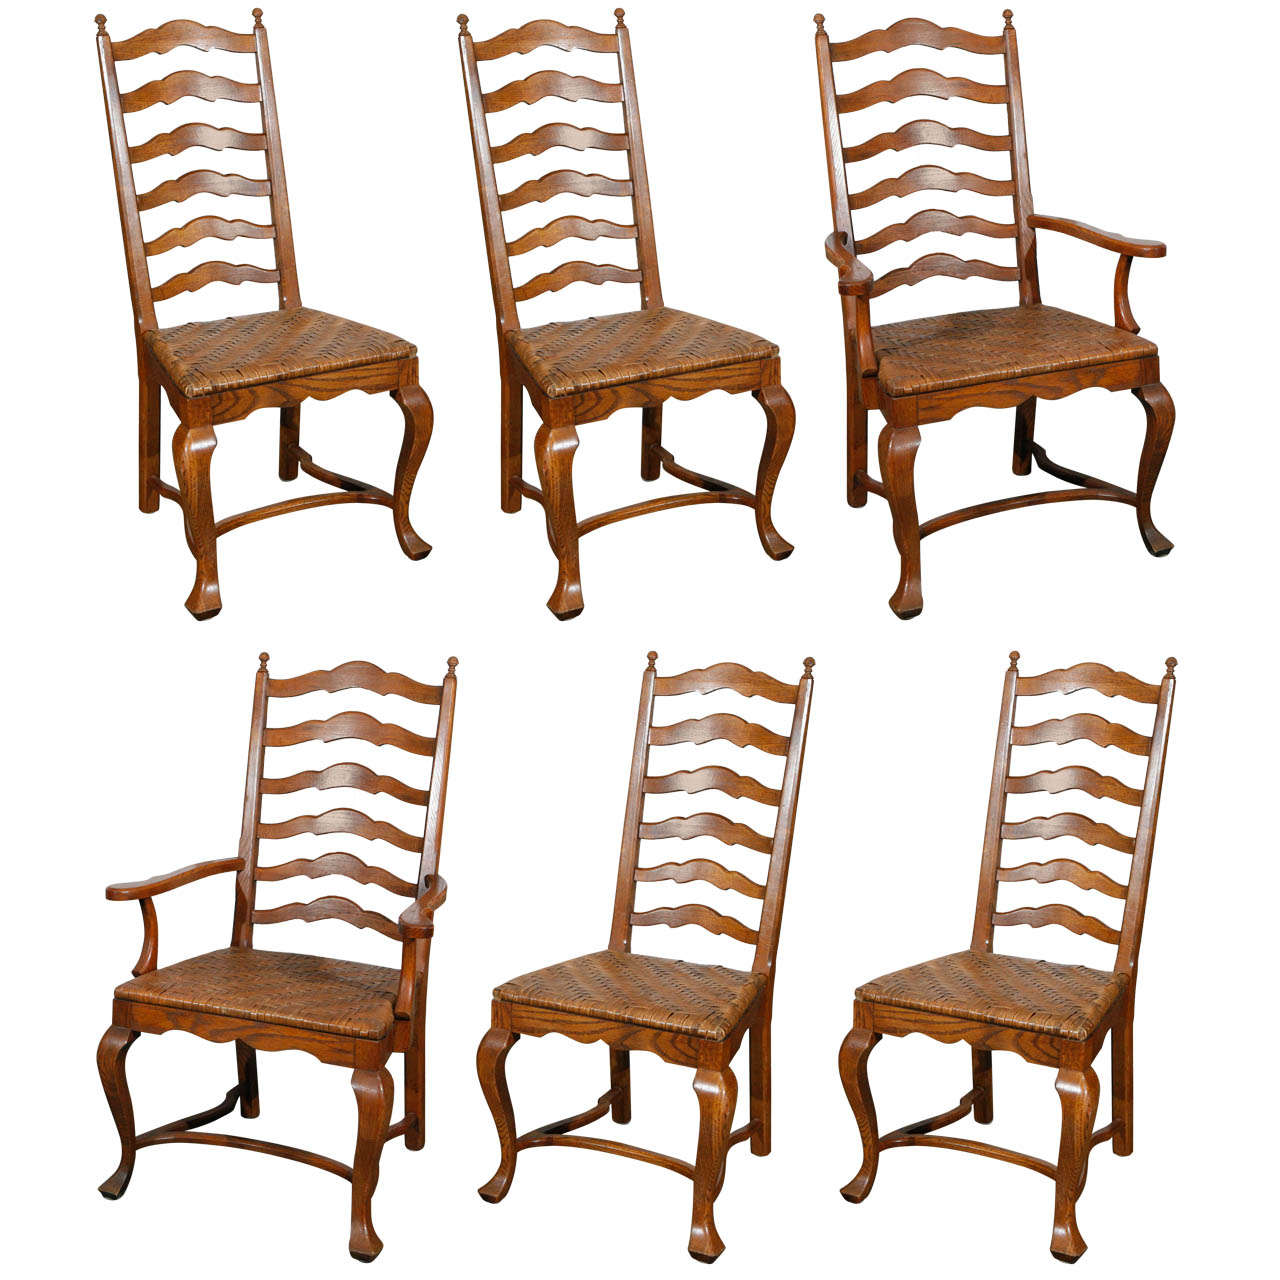 antique ladder back chairs value directors chair canvas replacement covers set of 6 oak dining at 1stdibs